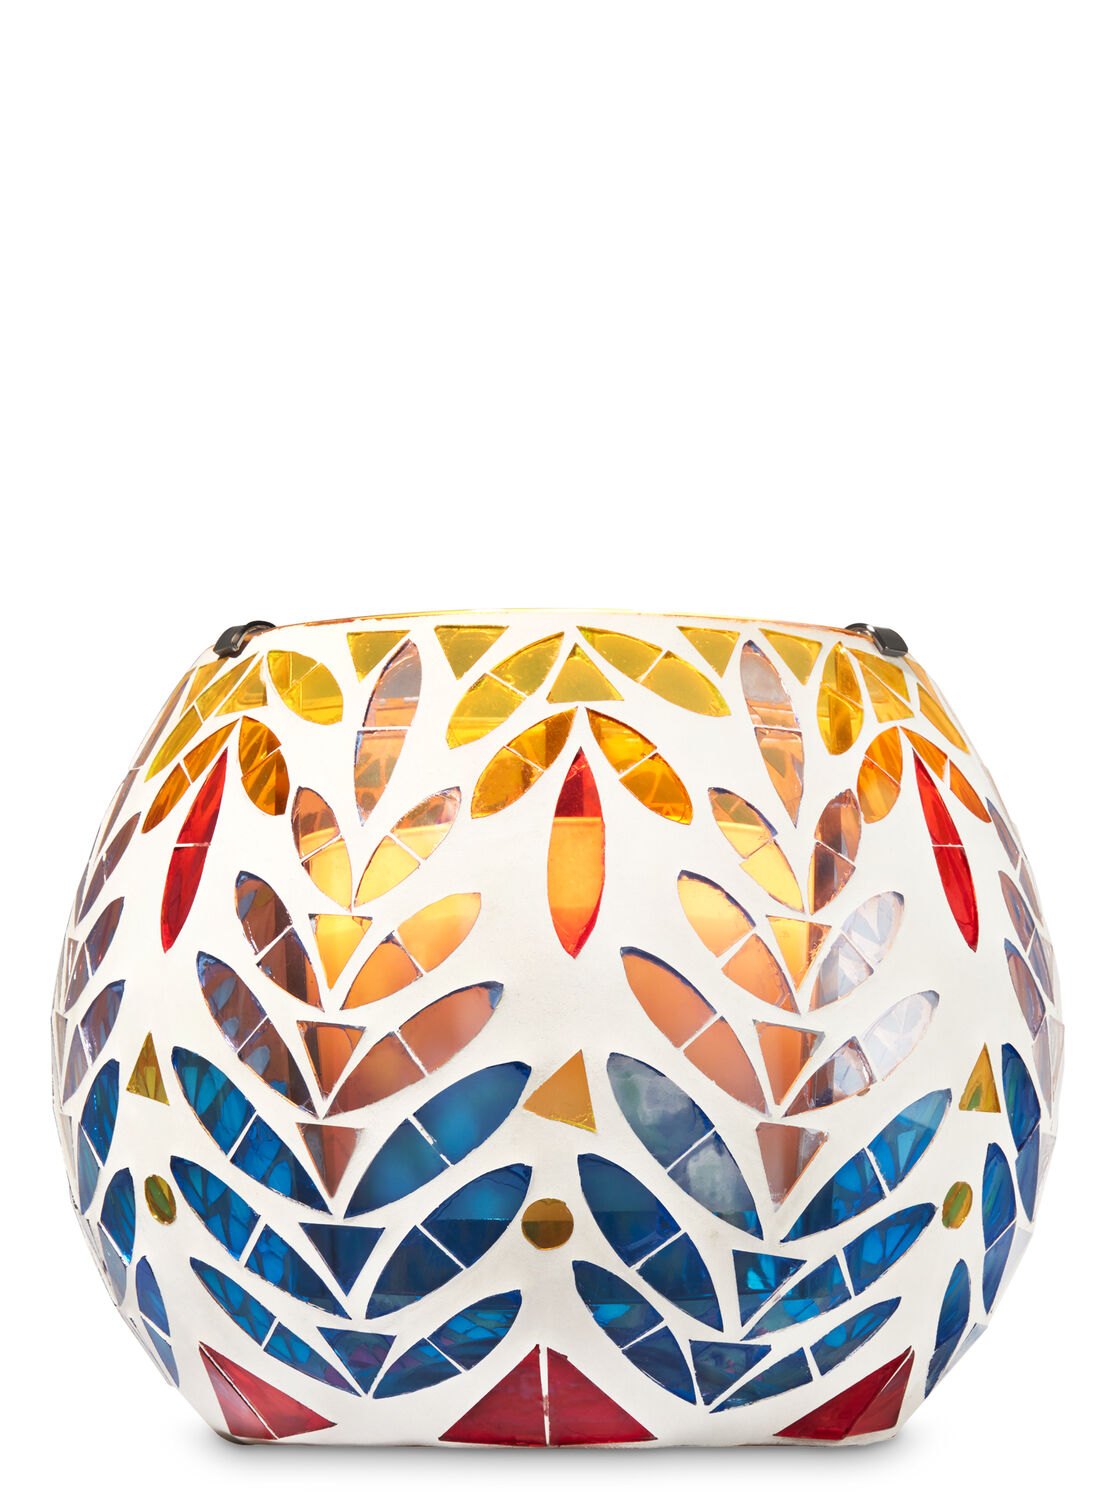 Colorful Mosaic Luminary 3-Wick Candle Holder  sc 1 st  Bath u0026 Body Works & Colorful Mosaic Luminary 3-Wick Candle Holder | Bath u0026 Body Works